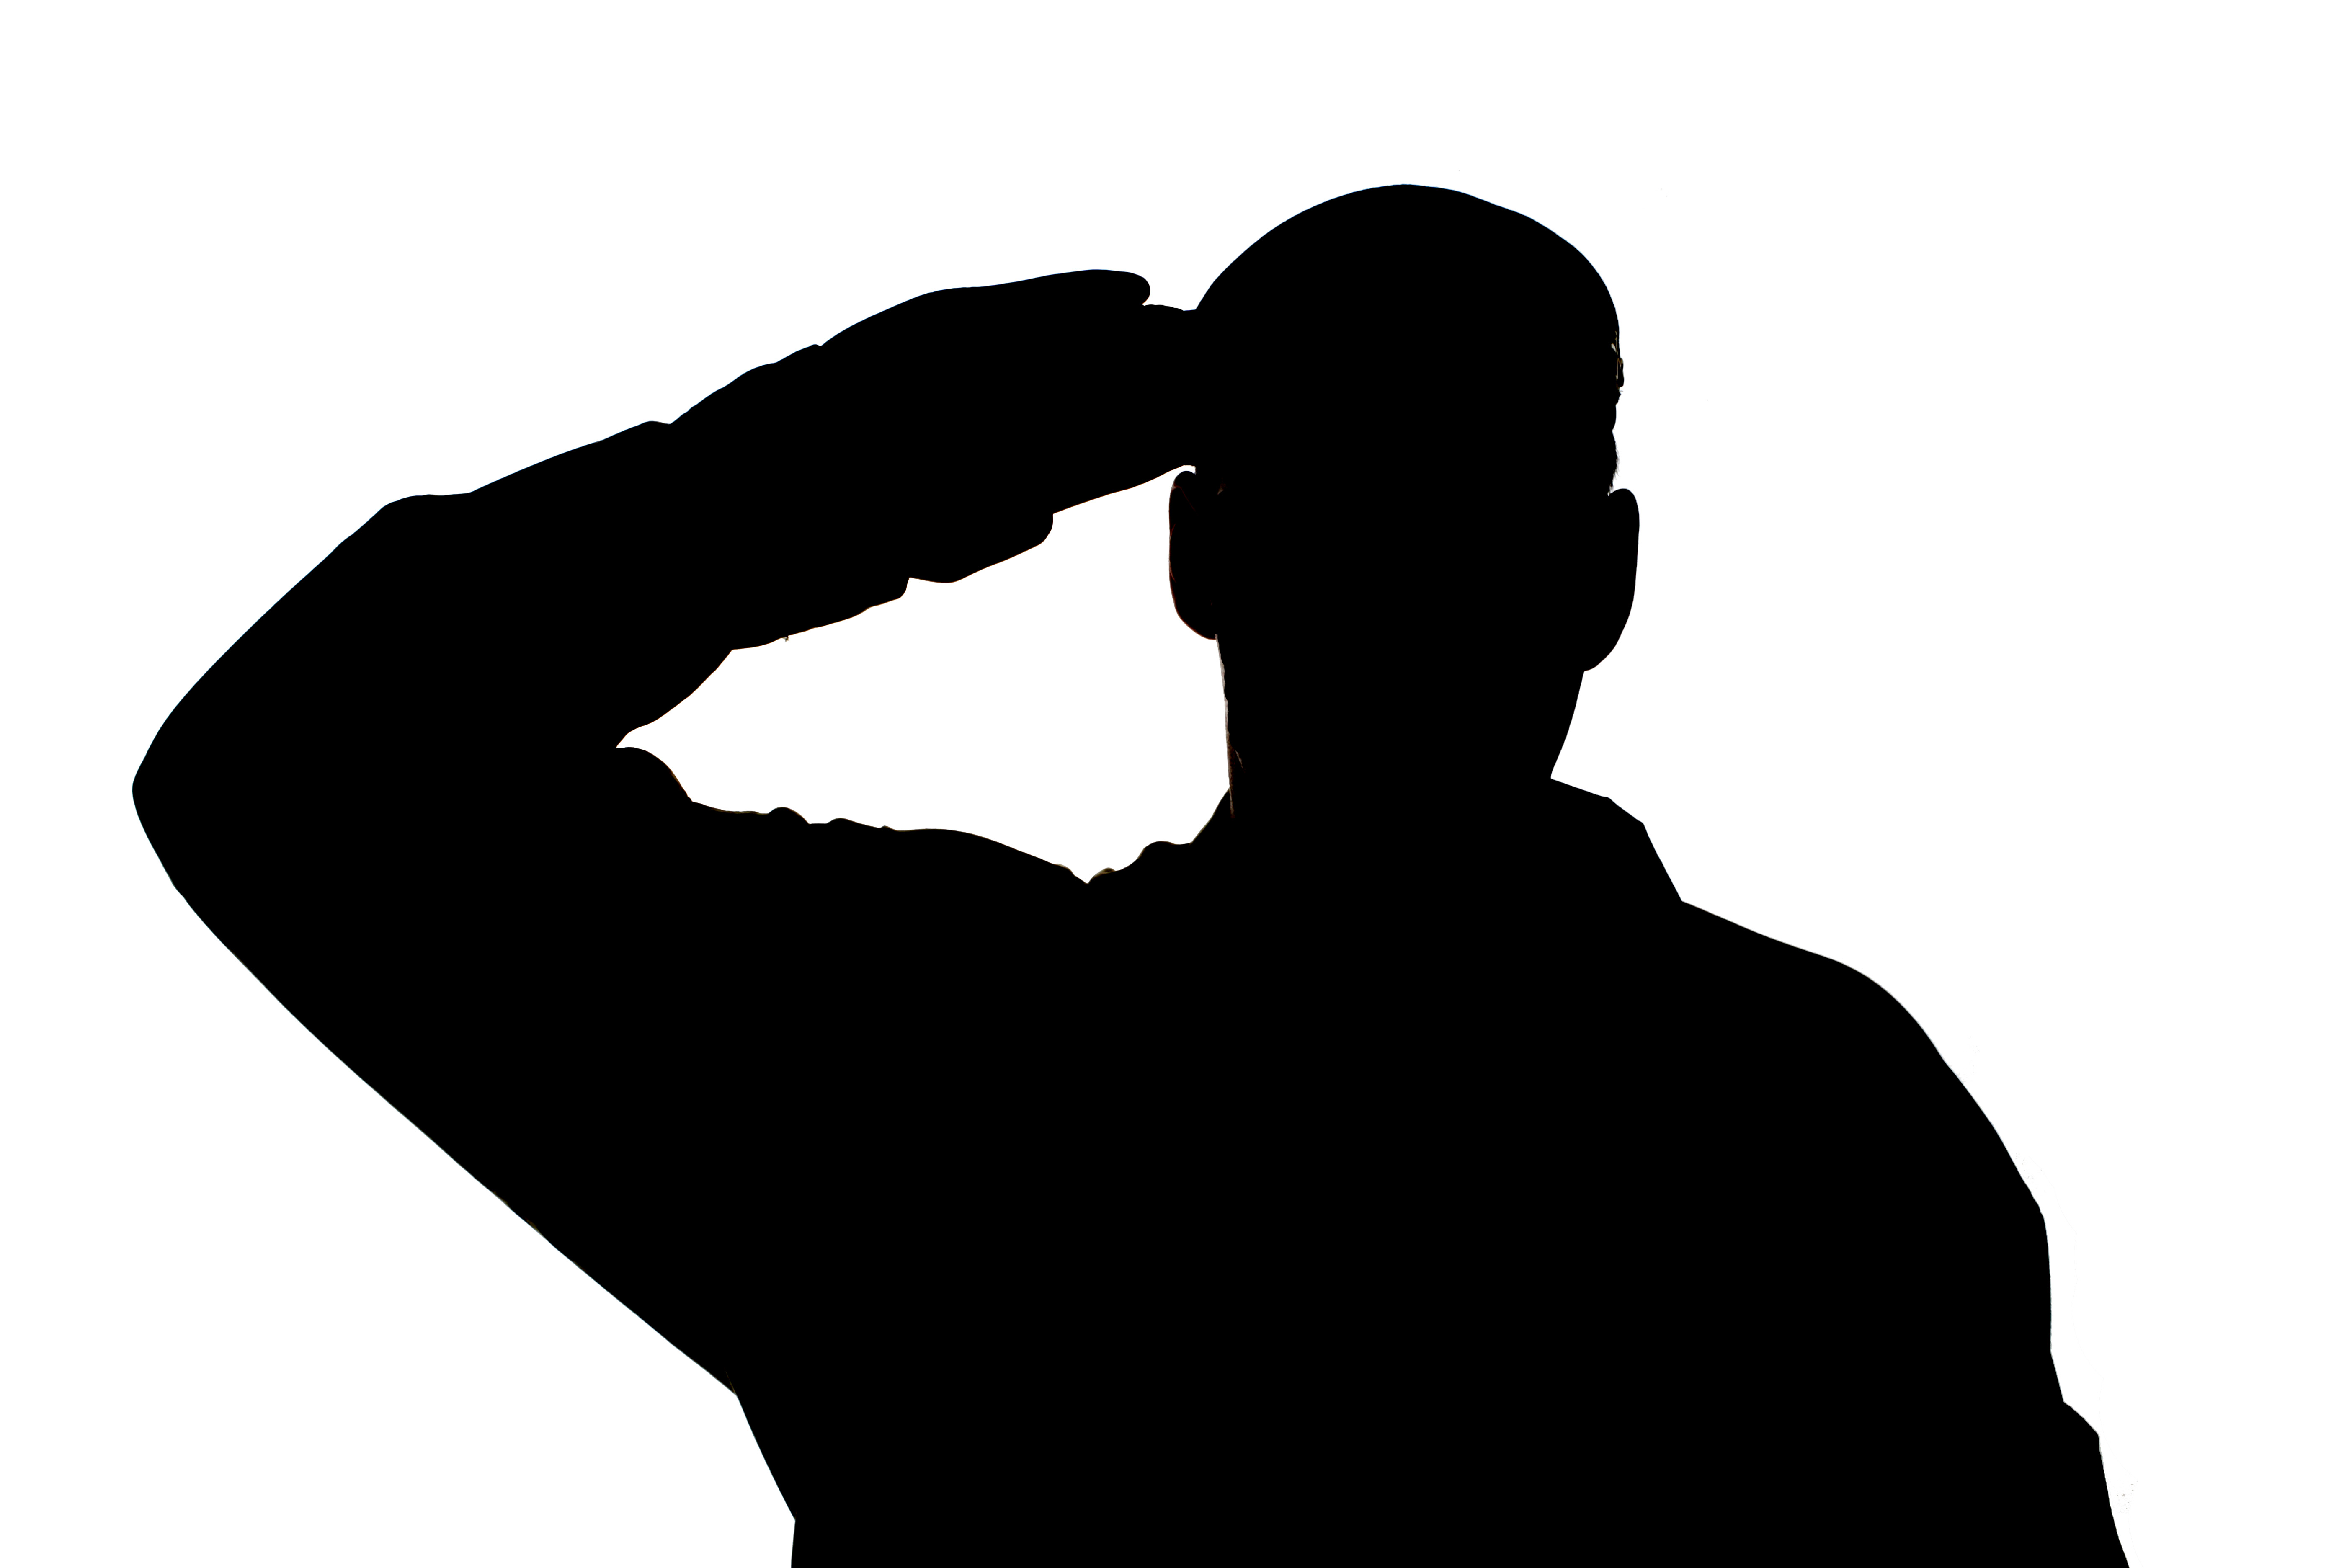 salute from heart